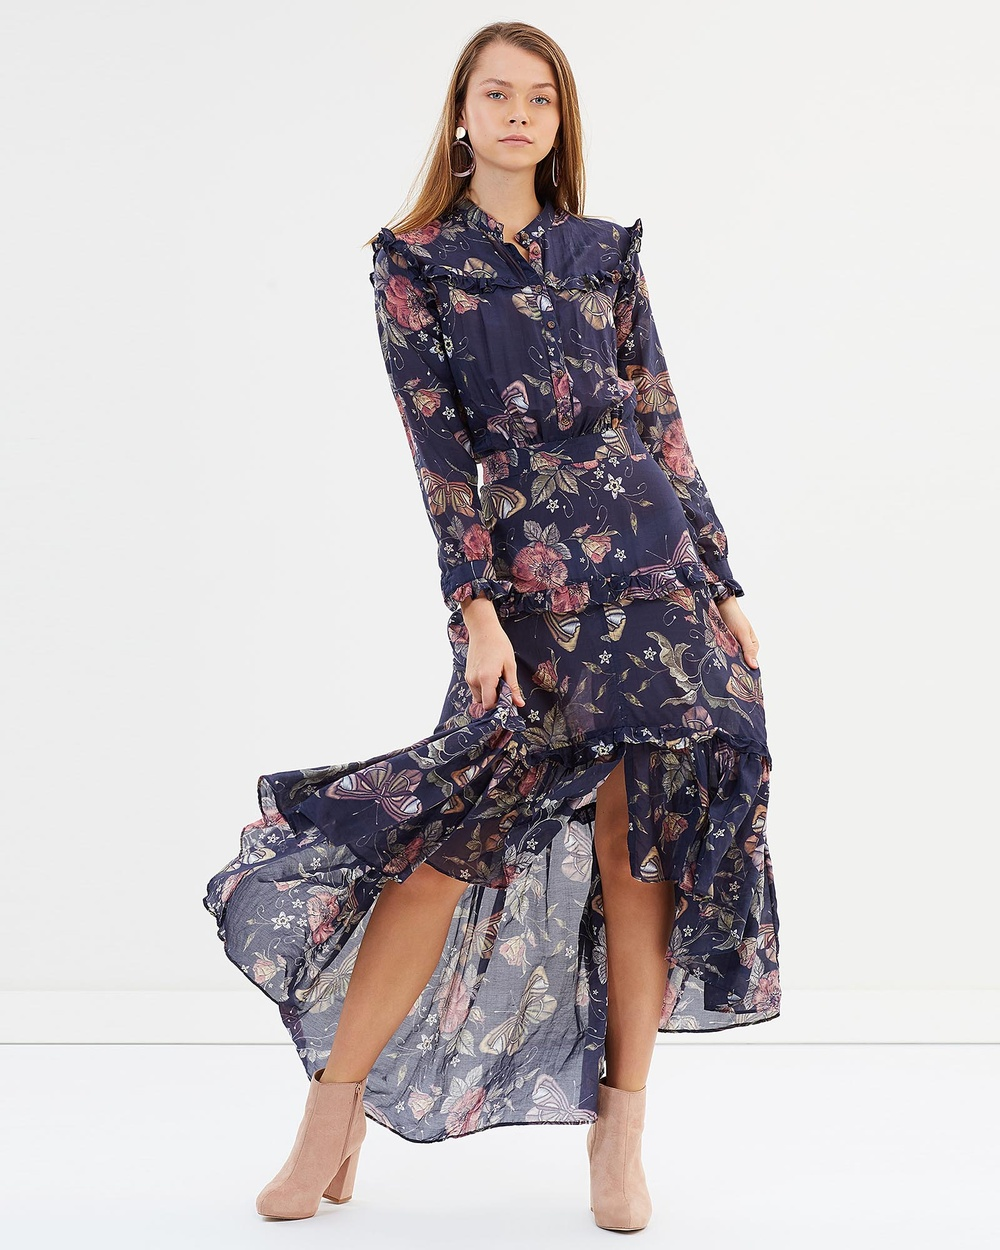 By Weave Evelyn Dress Printed Dresses Multi Evelyn Dress